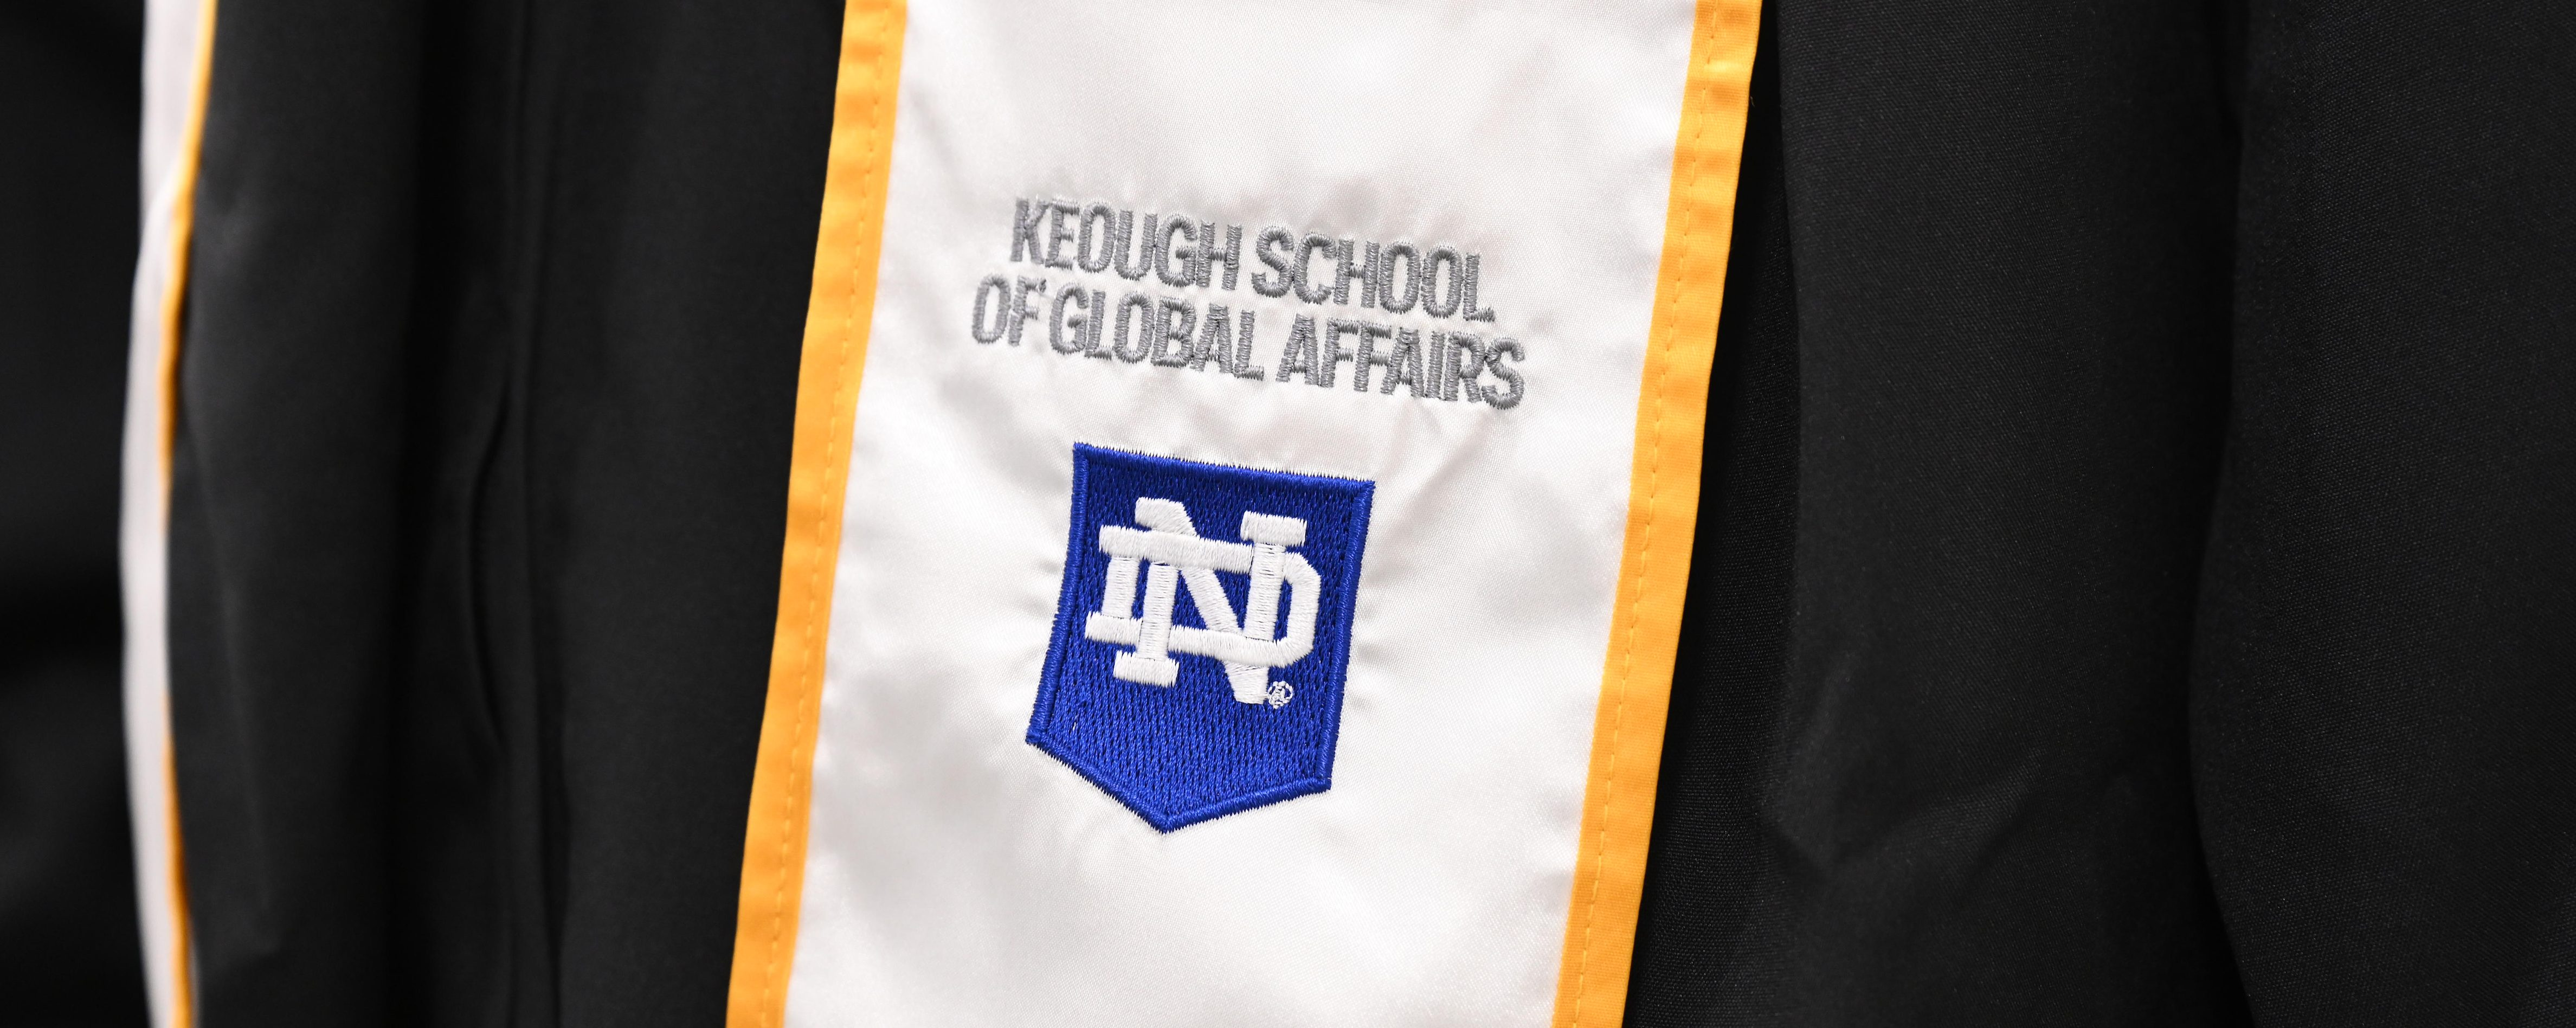 A white stole with gold trim and the Keough School logo